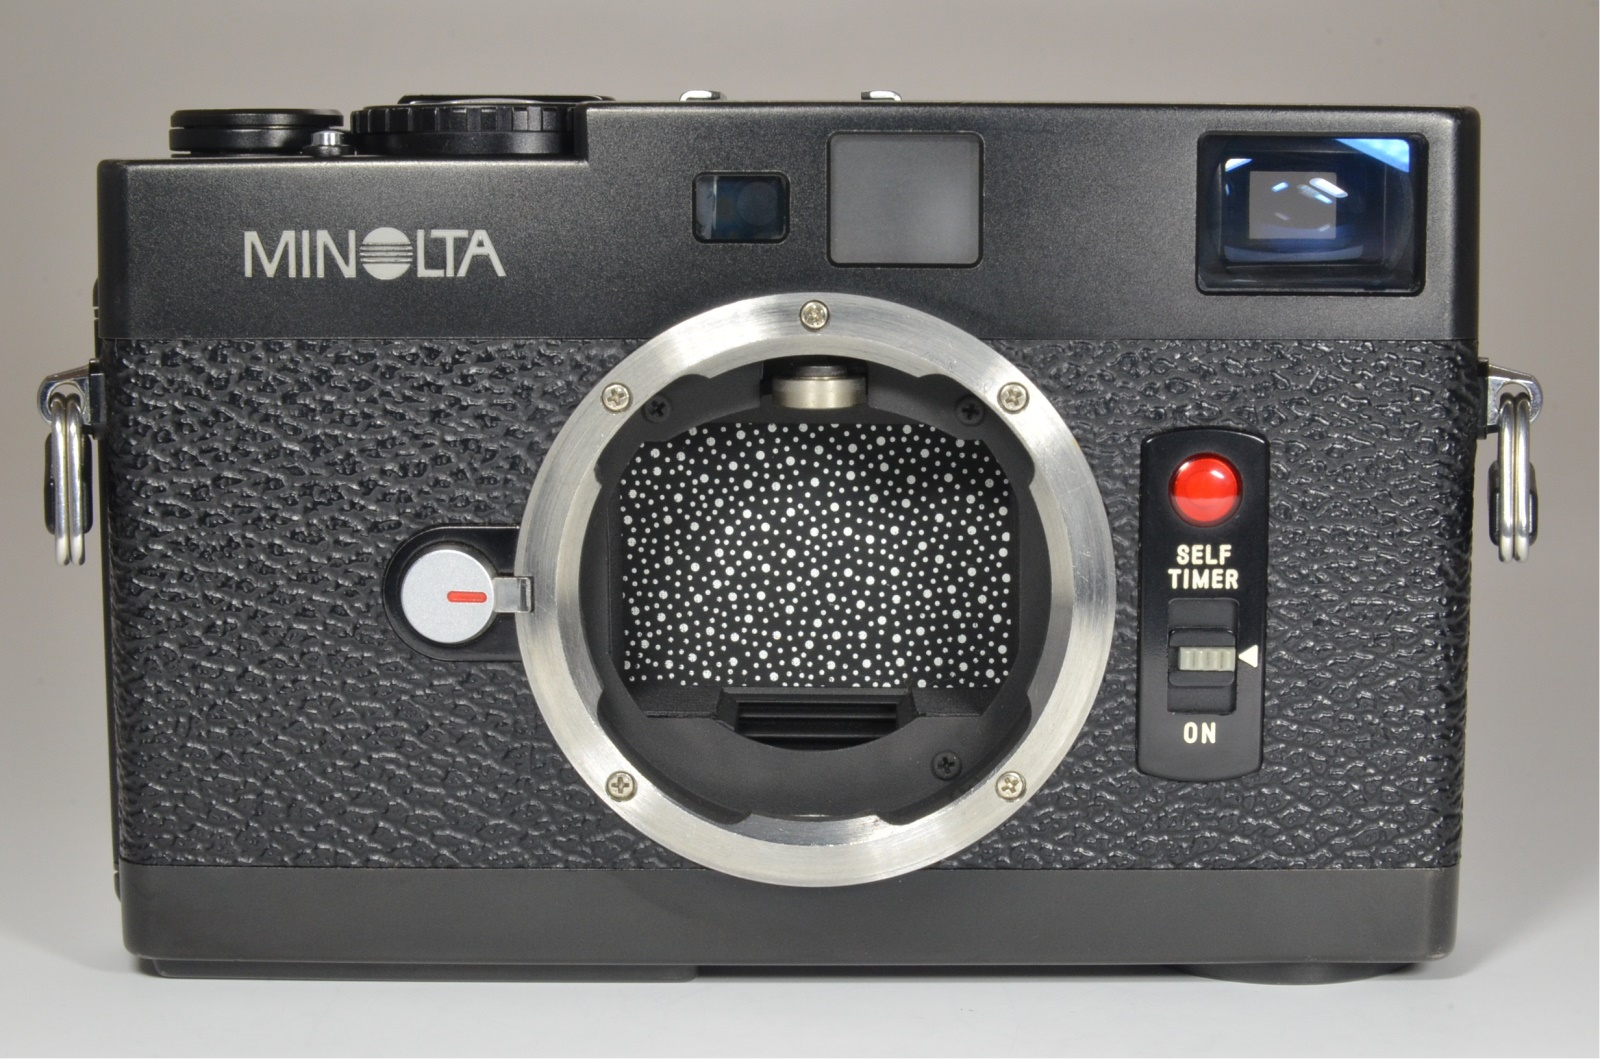 minolta cle 35mm film camera with lens m-rokkor 40mm f2, 90mm f4 and 28mm f2.8